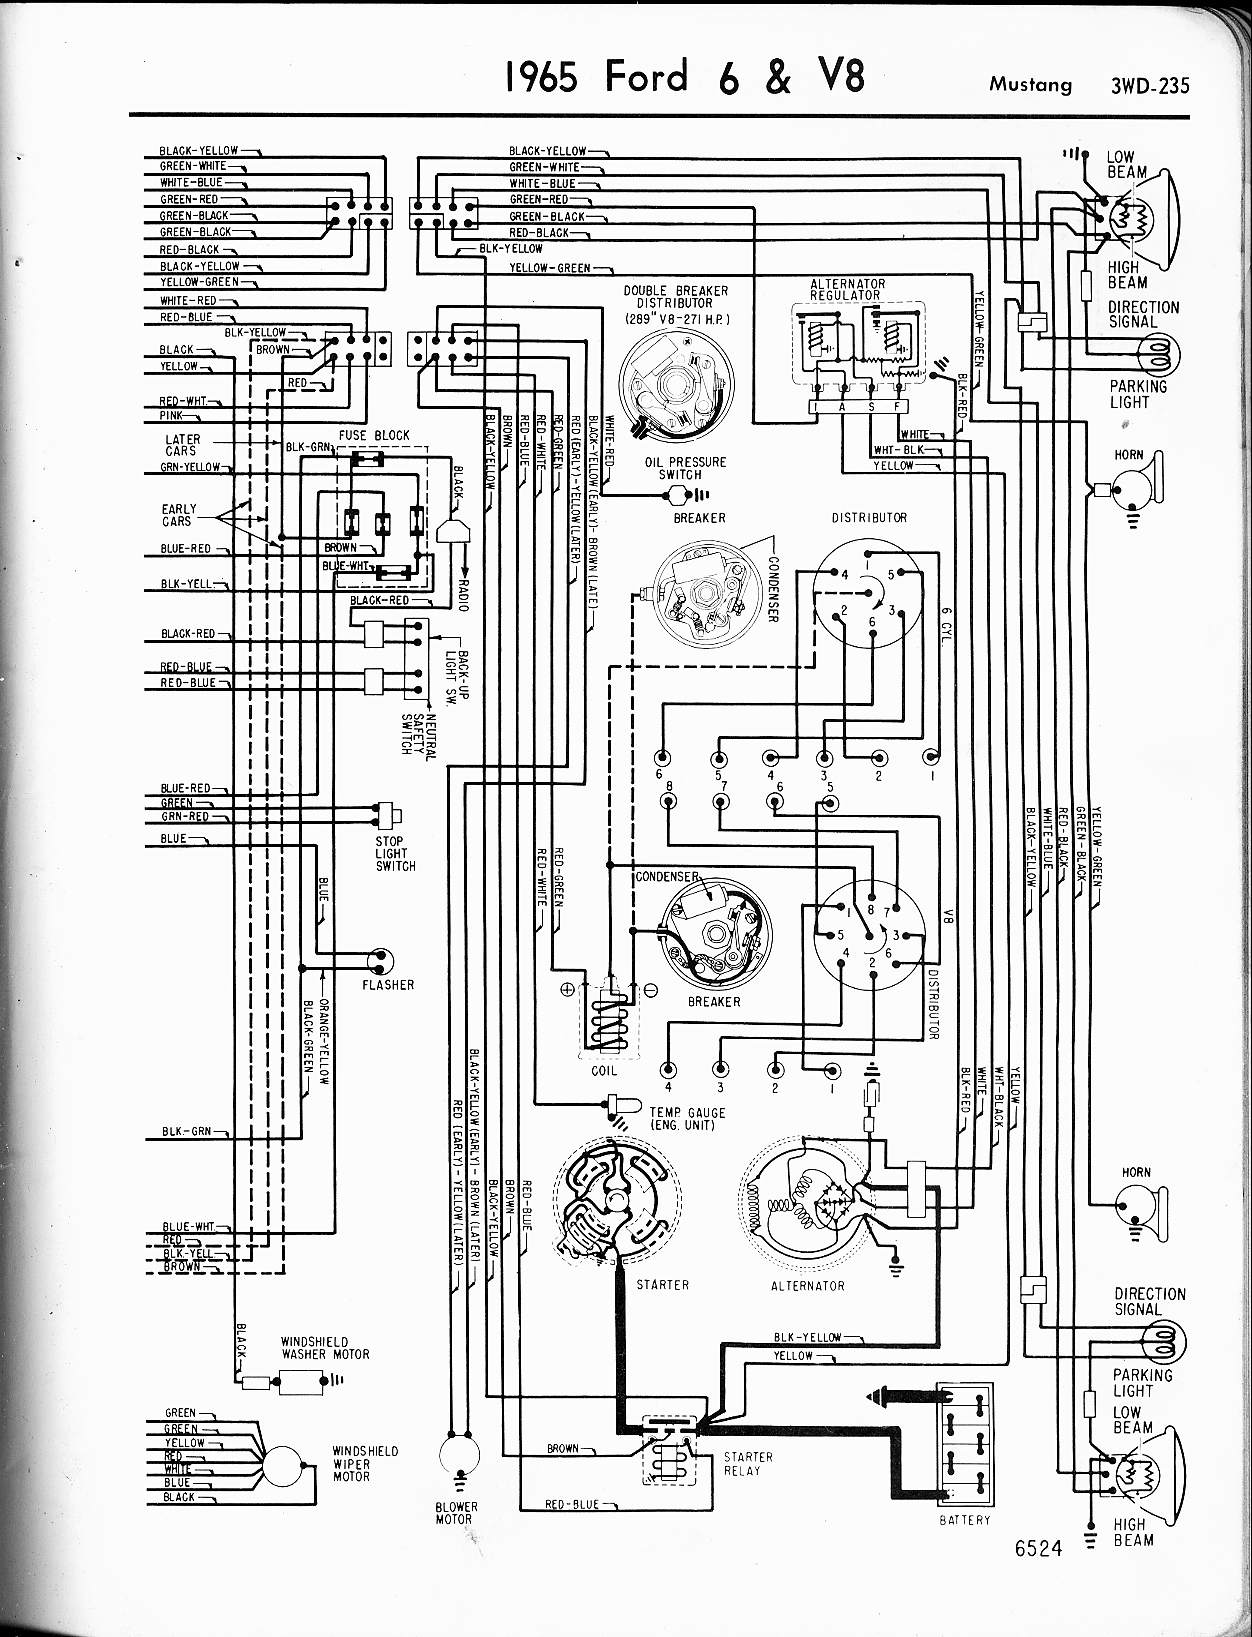 MWire5765 235 wiring diagrams 1968 ford f100 6 cyl readingrat net 1969 Ford F100 Steering Column Wiring Diagram at gsmportal.co